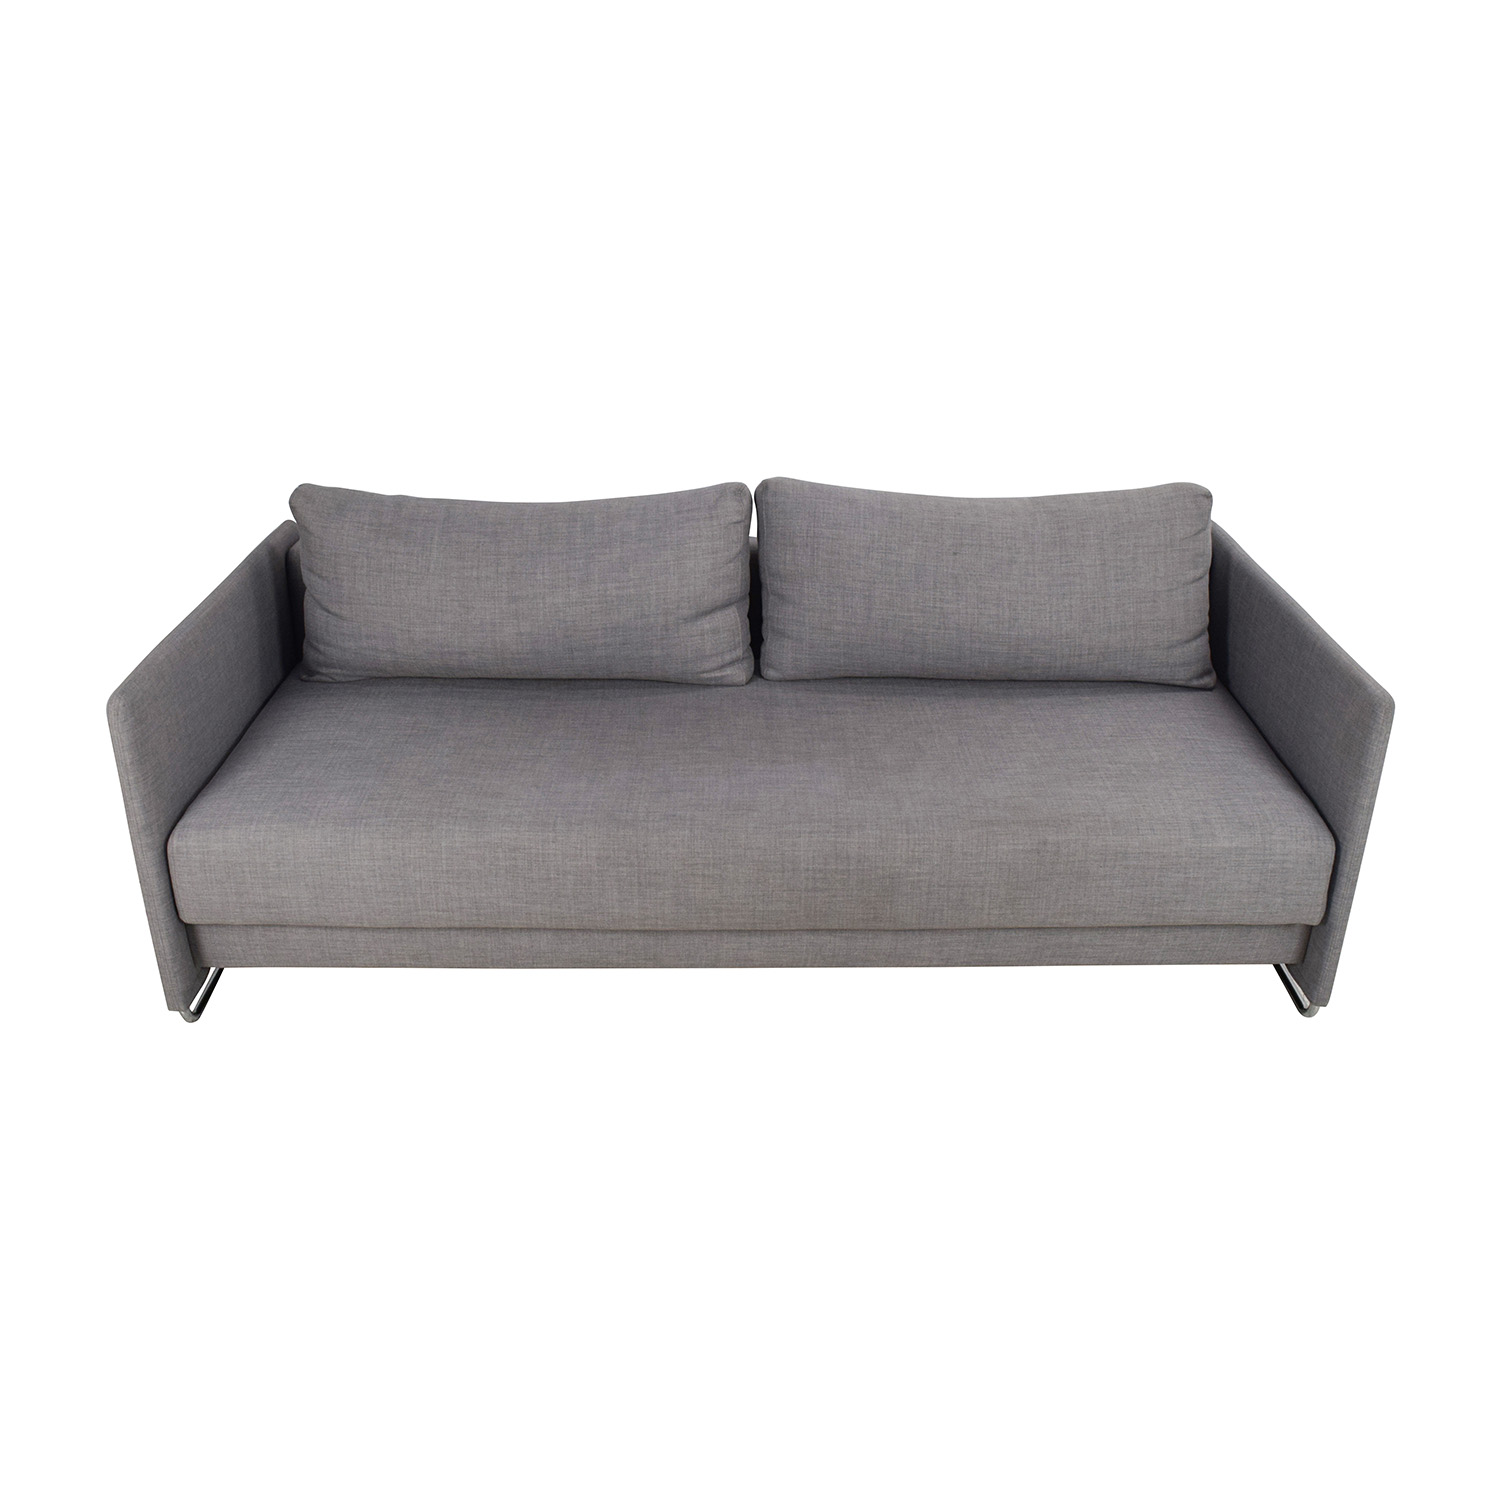 50% OFF CB2 CB2 Tandom Grey Sleeper Sofa Sofas